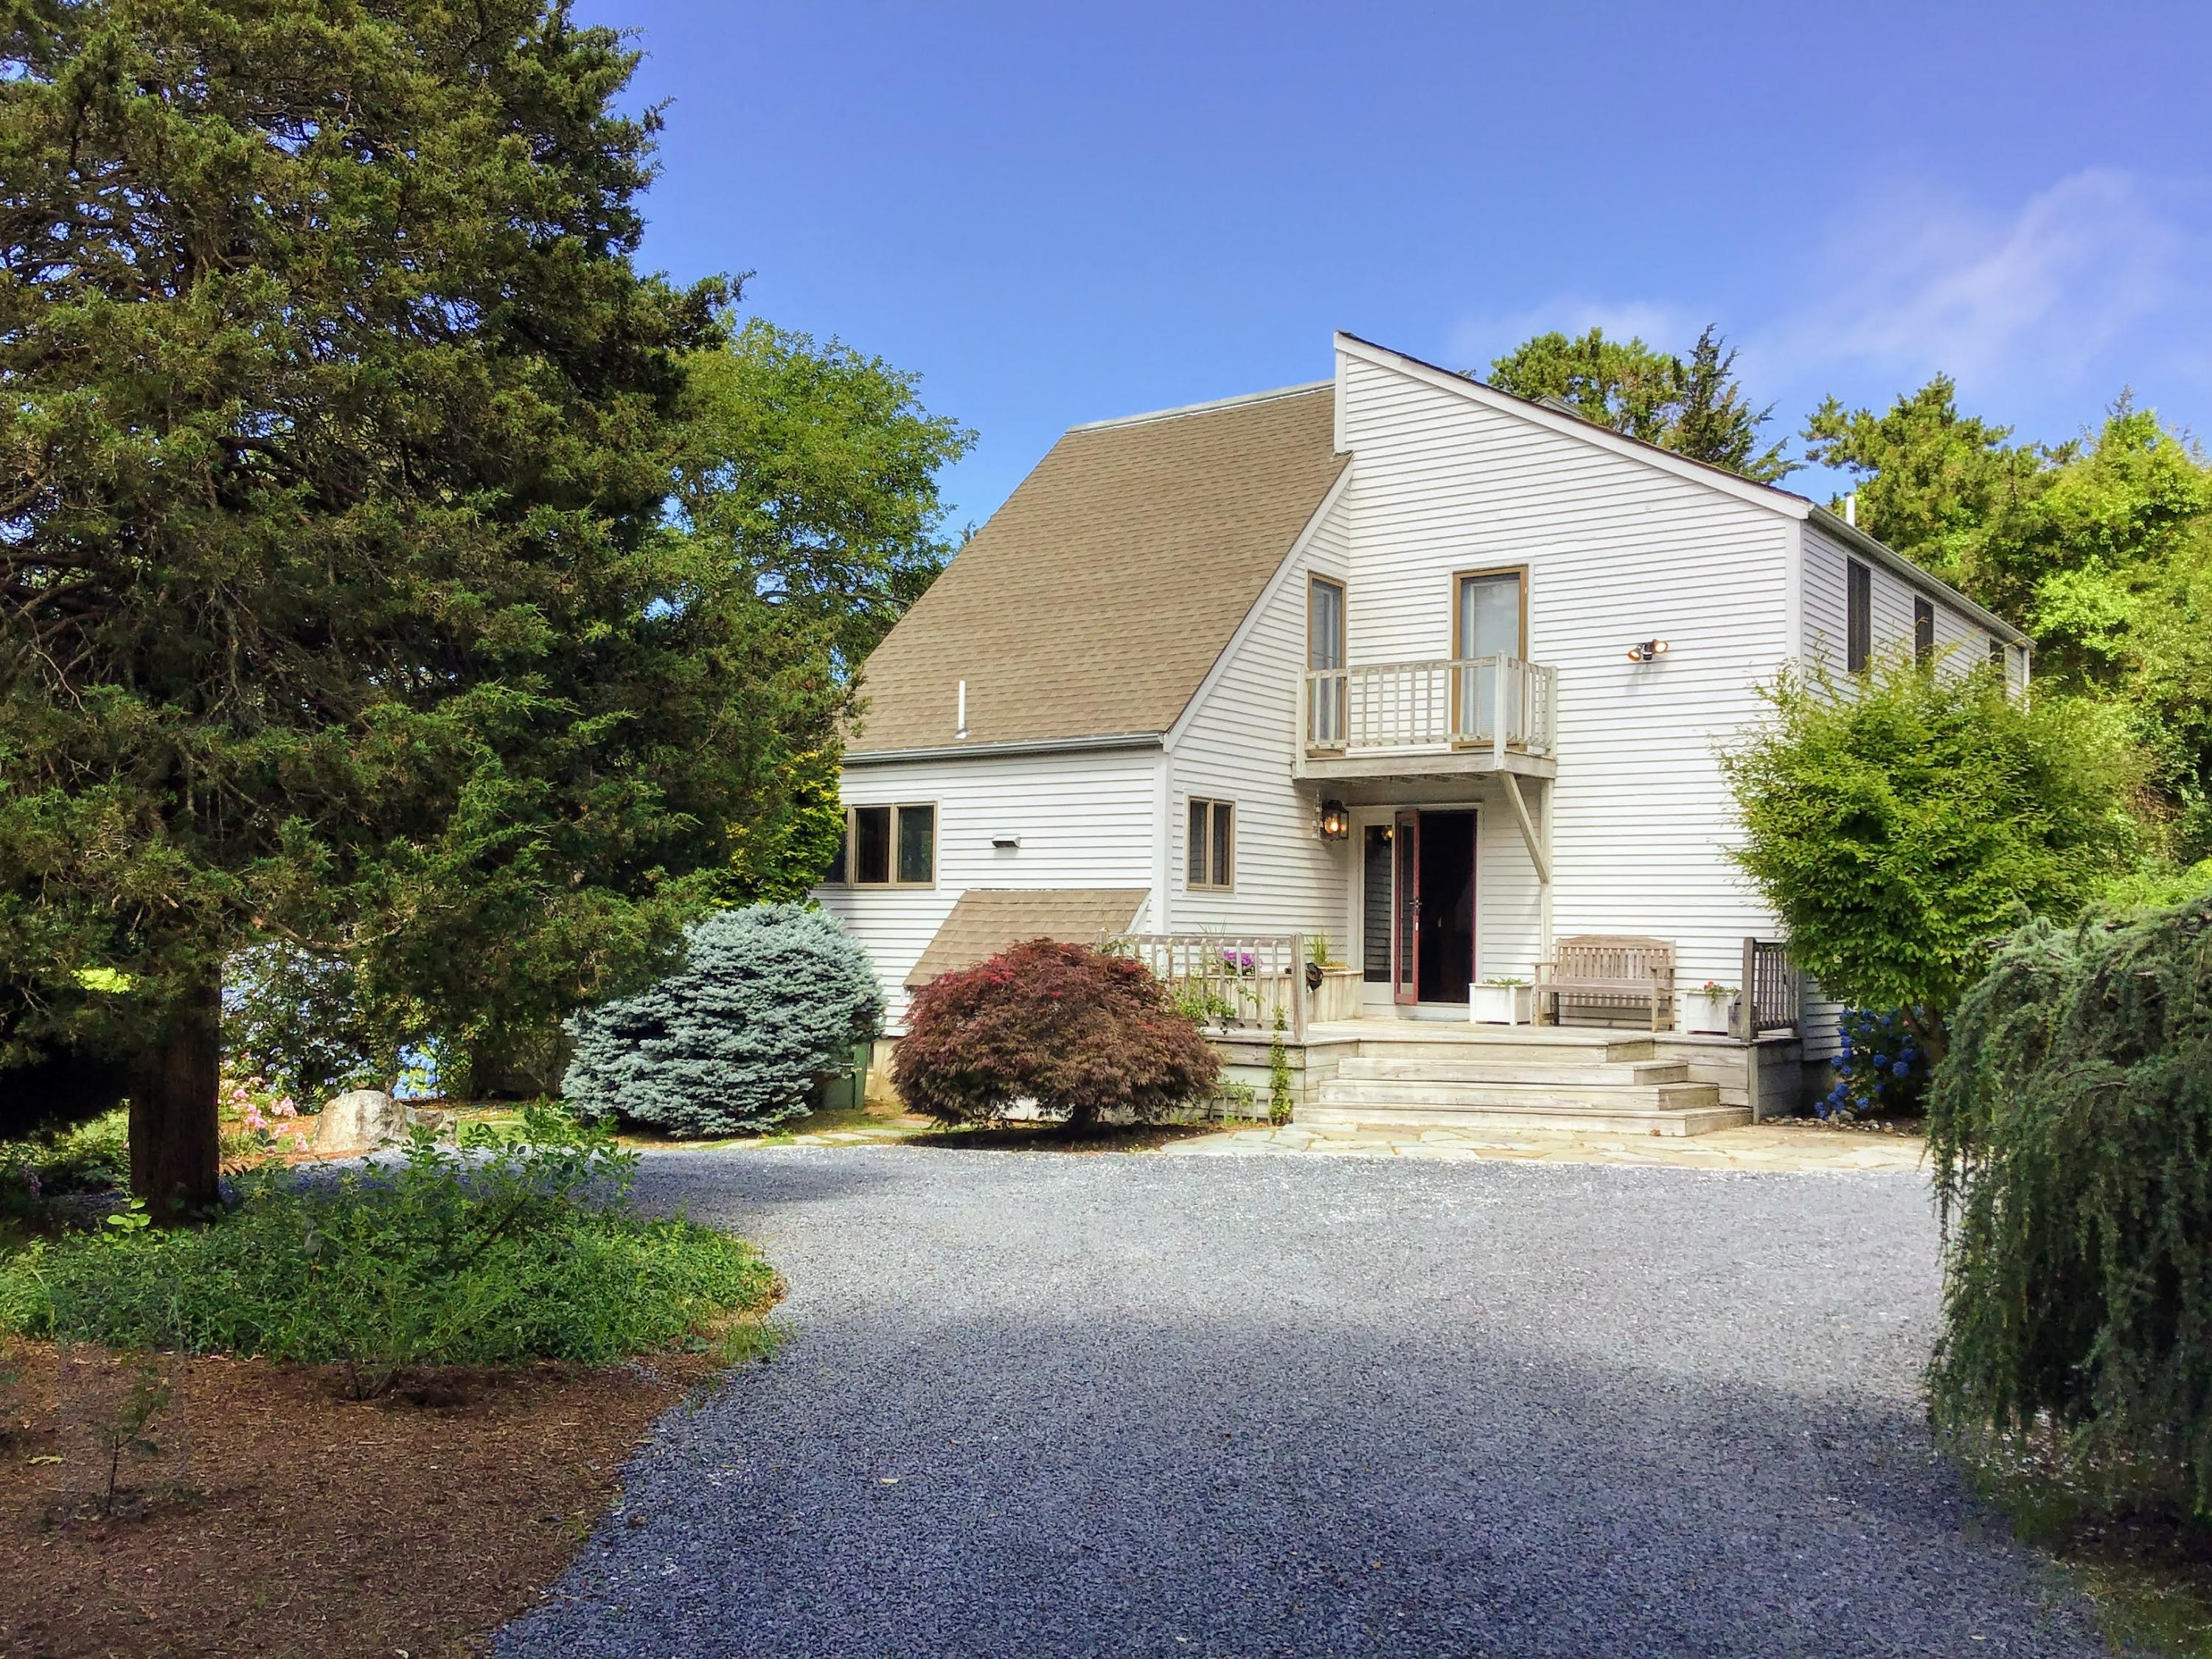 10 Blueberry Island Road, Orleans MA, 02653 details